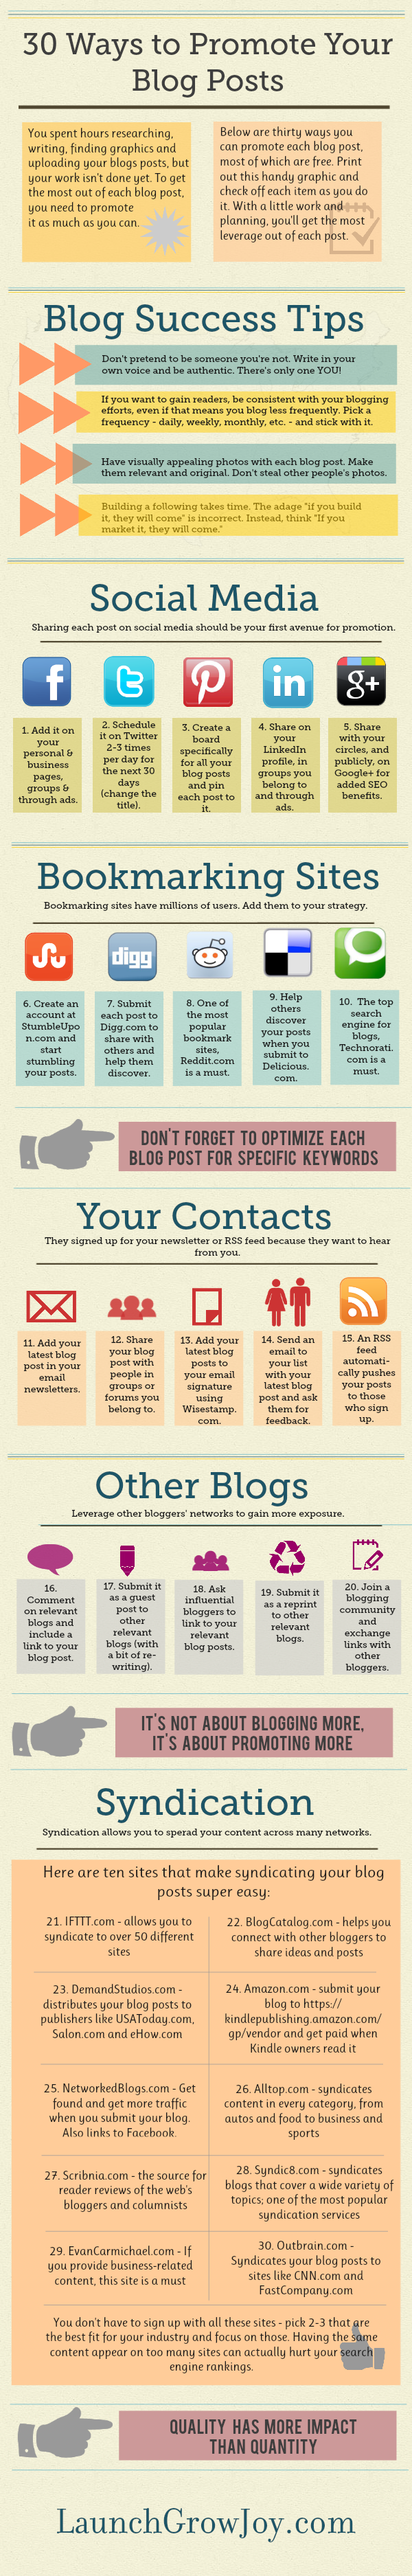 30 Ways To Promote Your Blog Posts - #infographic